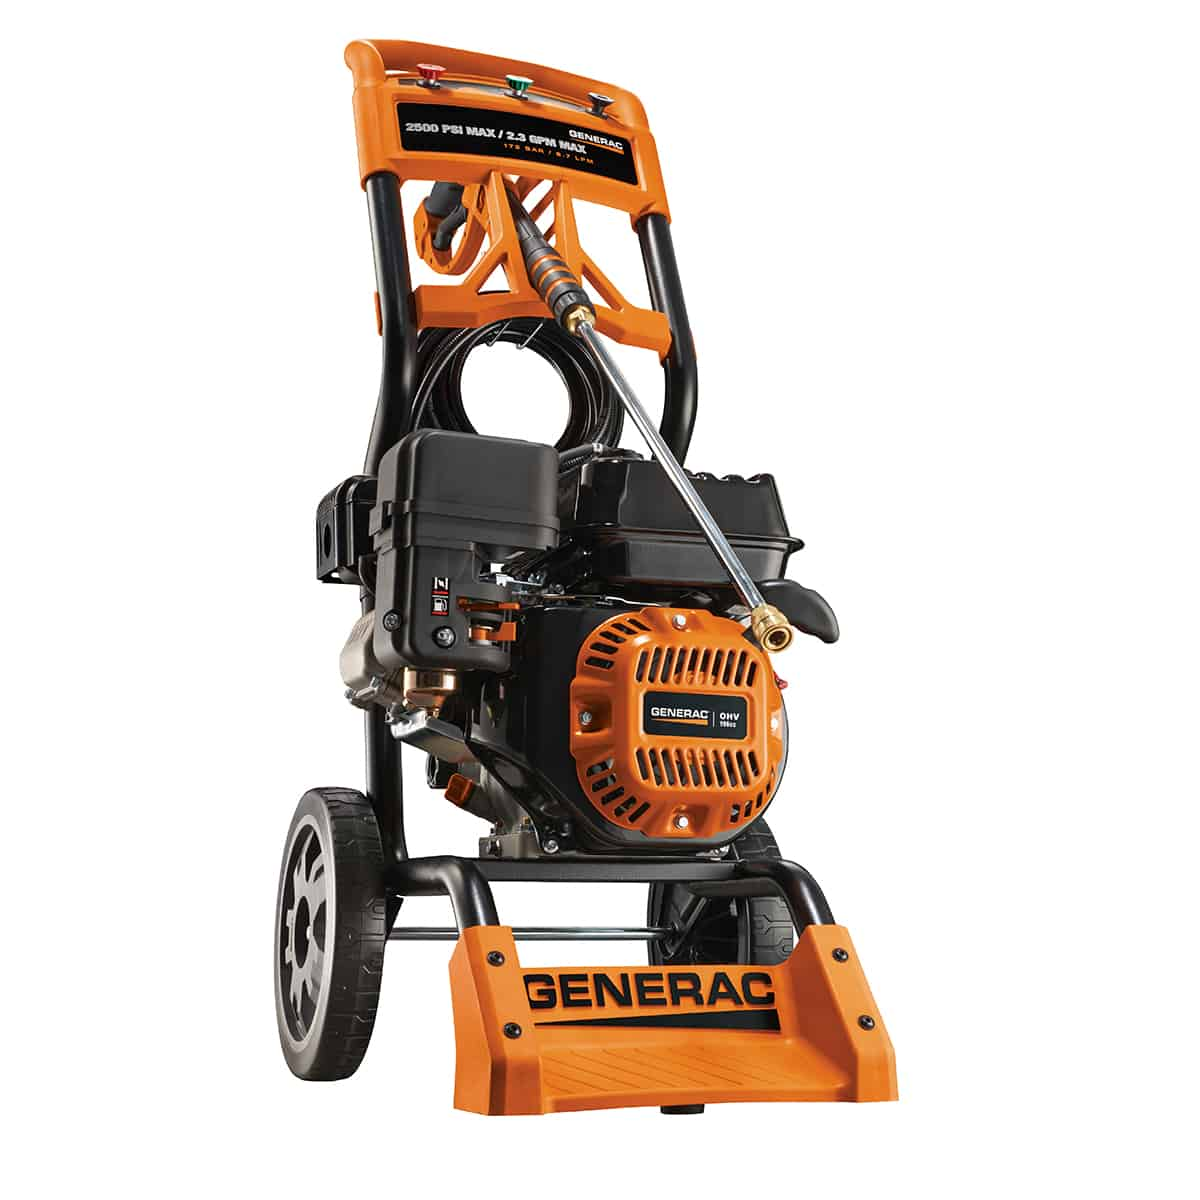 Generac 2500 PSI Residential Power Washer | Model 6595